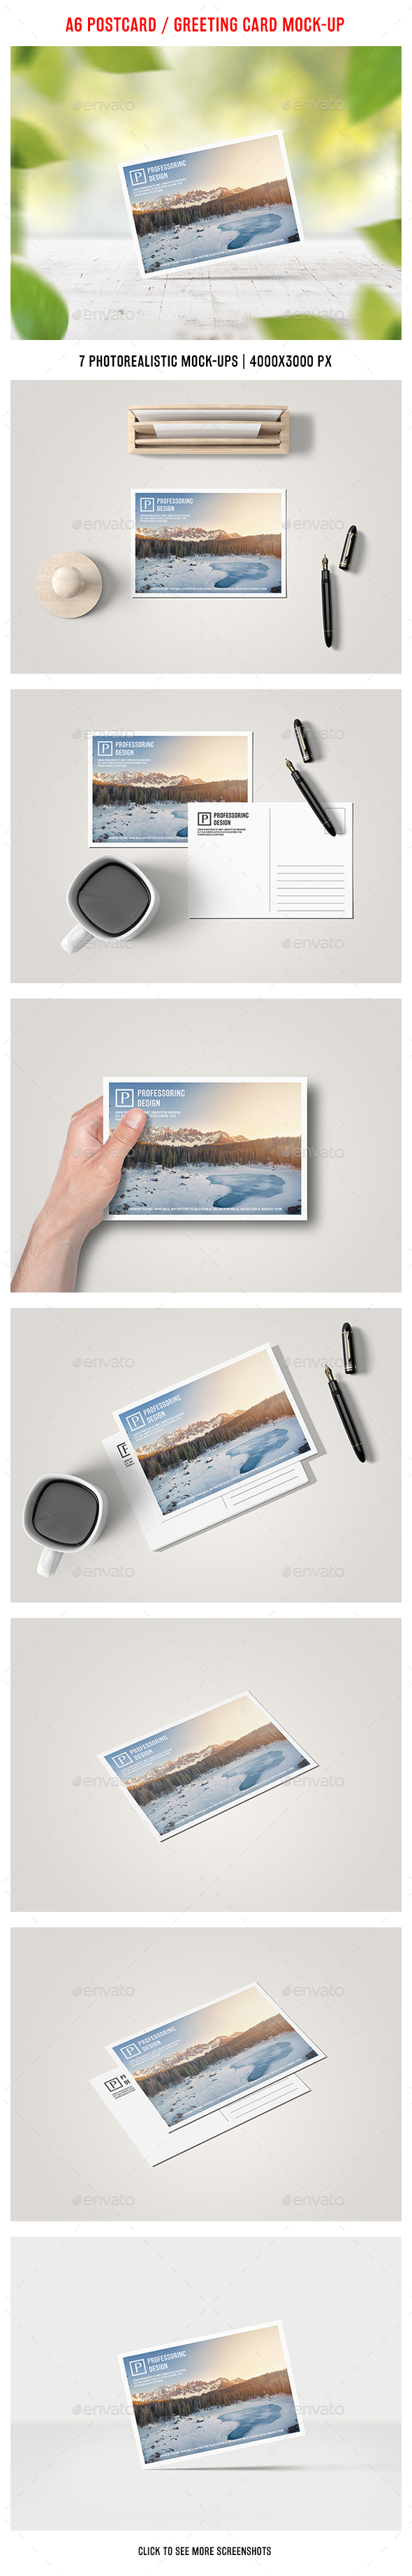 A6 Postcard / Greeting Card Mock-up